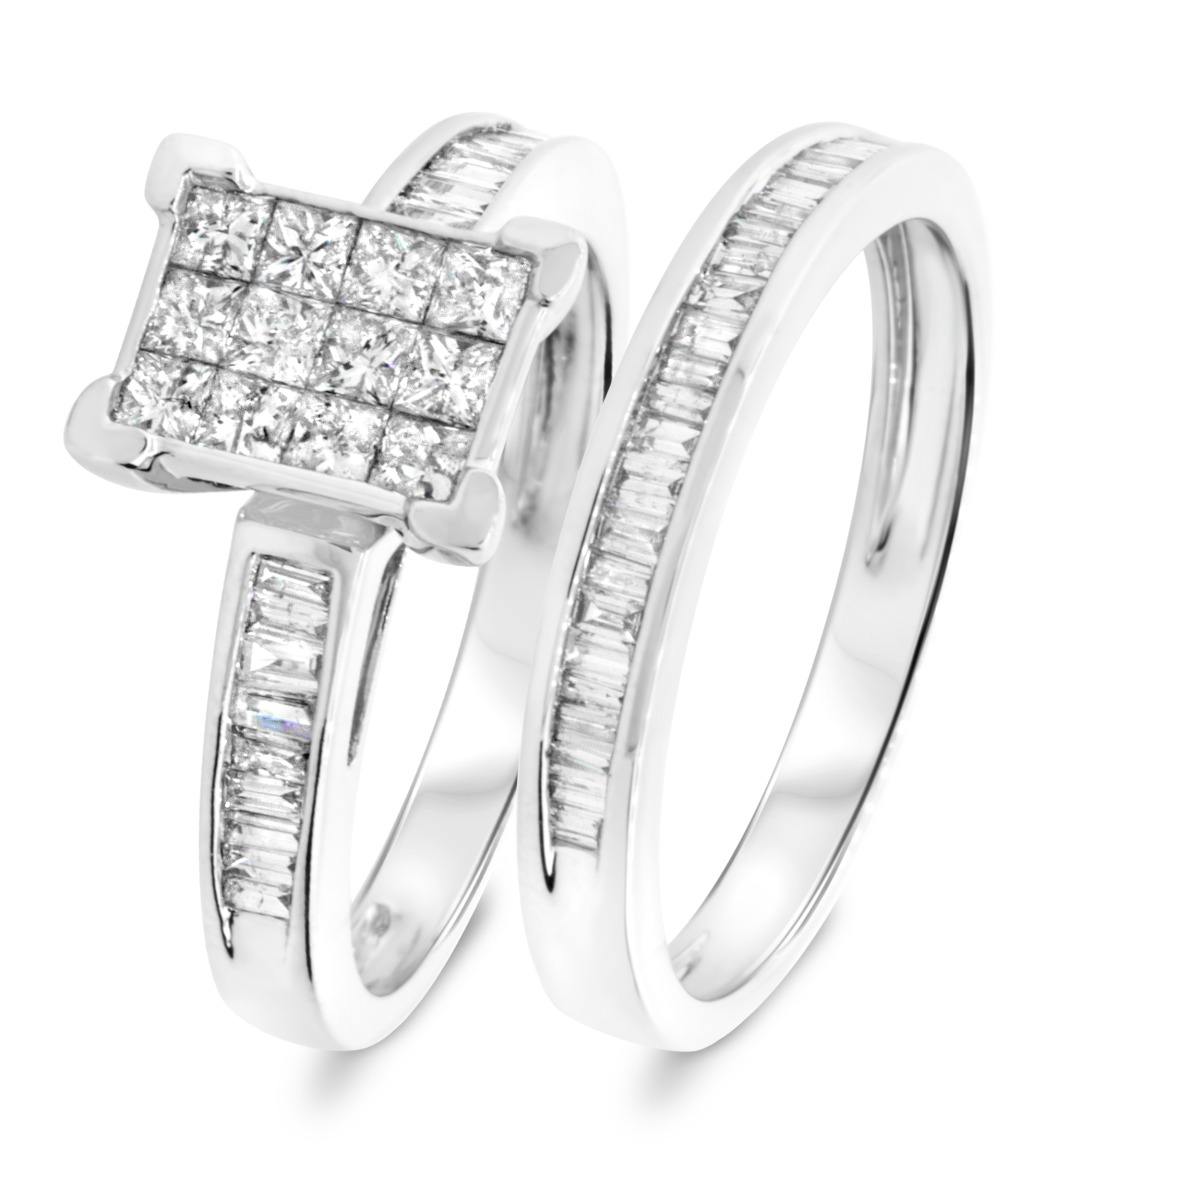 1 1/10 CT. T.W. Princess, Baguette Cut Diamond Ladies Bridal Wedding Ring Set 14K White Gold